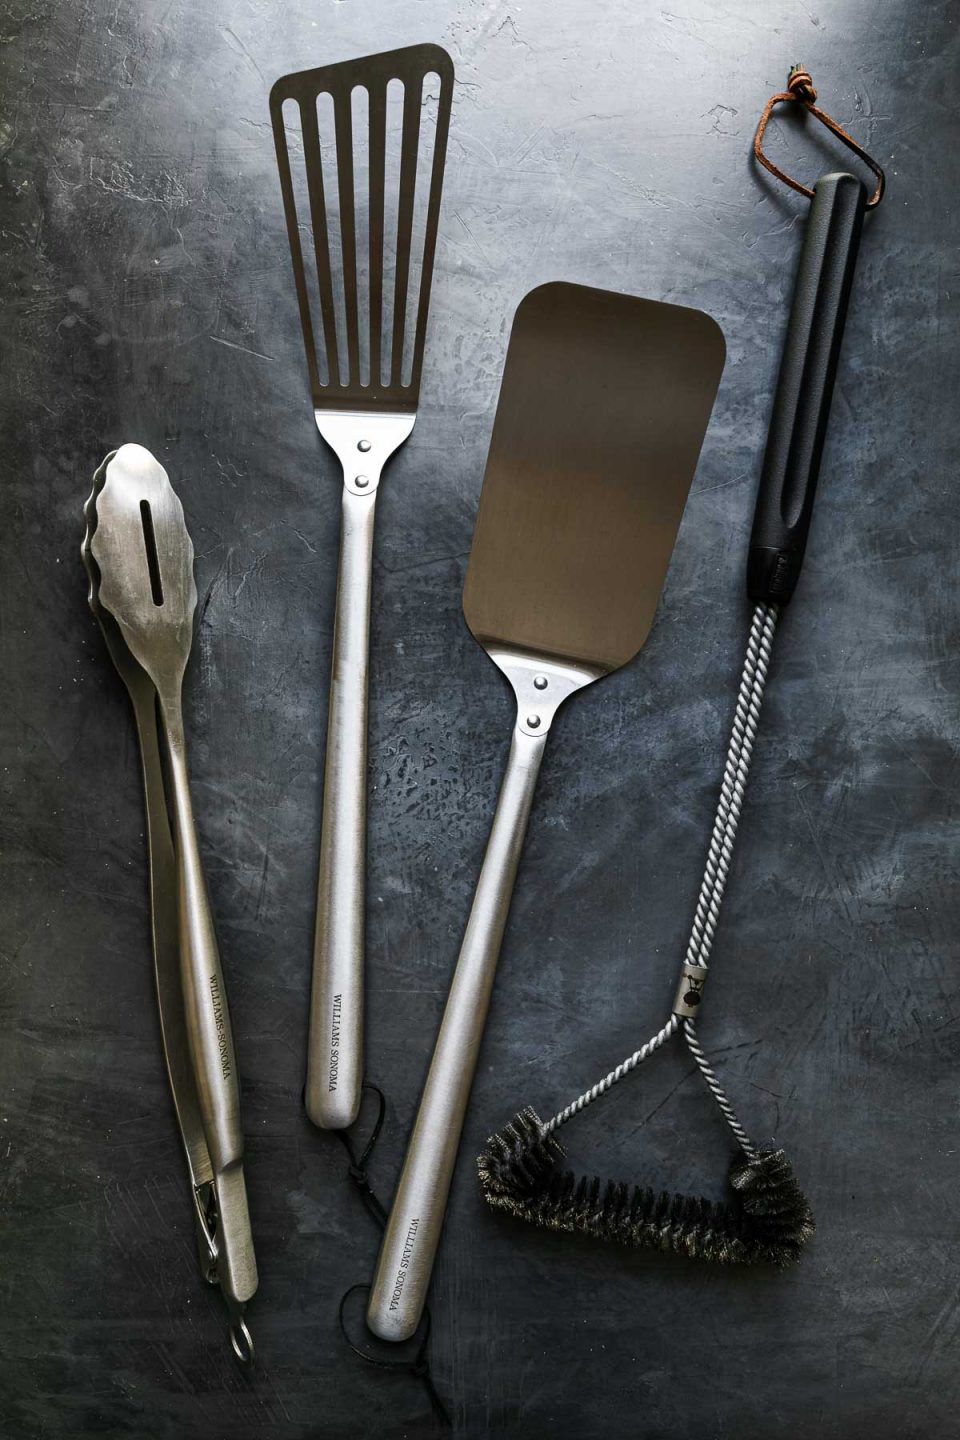 Grill tools arranged on a black surface: grill tongs, grill spatulas, grill brush.